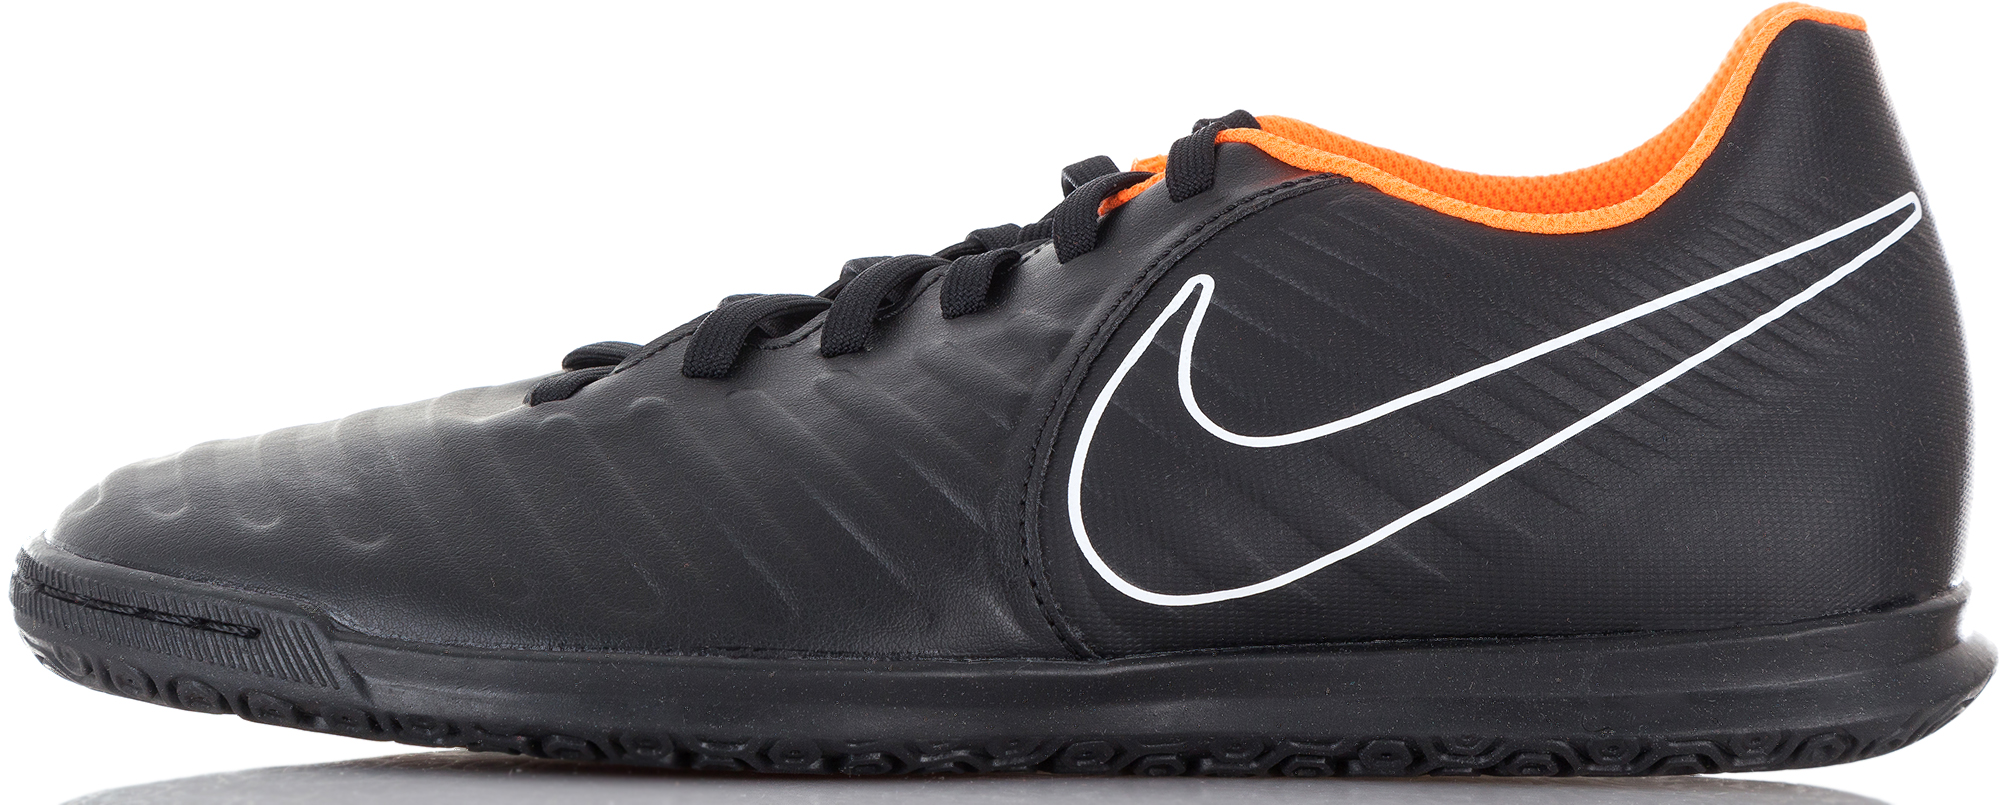 Nike Бутсы мужские Nike Tiempo LegendX 7 Club IC бутсы nike бутсы jr mercurialx vapor xi ic